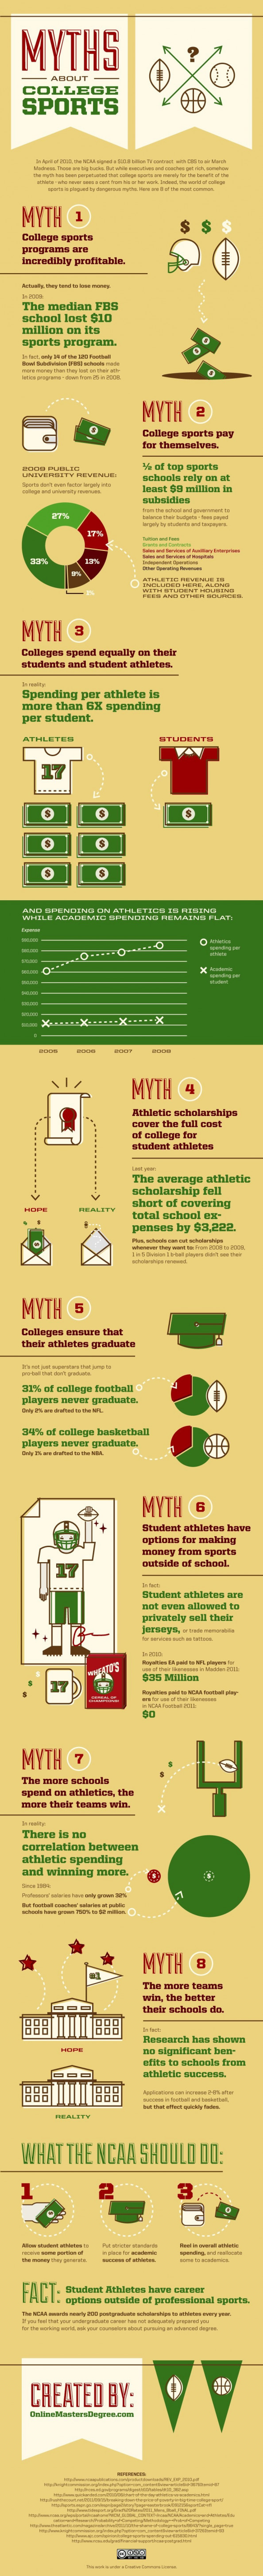 8 College Sports Myths Infographic